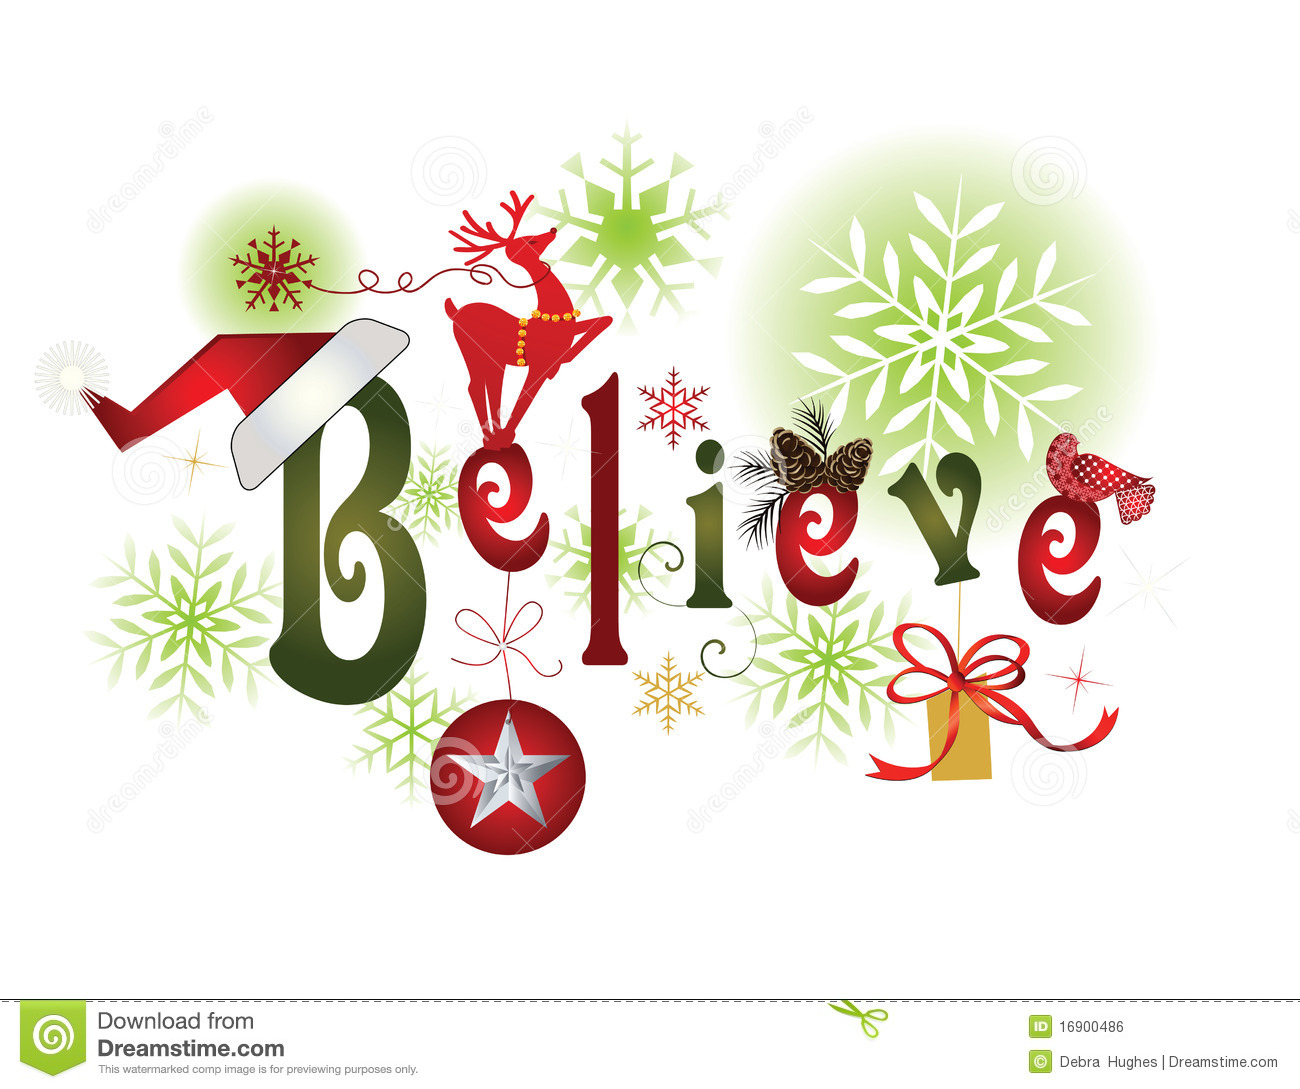 Free christmas message clipart jpg library library BELIEVE -Christmas Message Royalty Free Stock Image - Image: 16900486 jpg library library